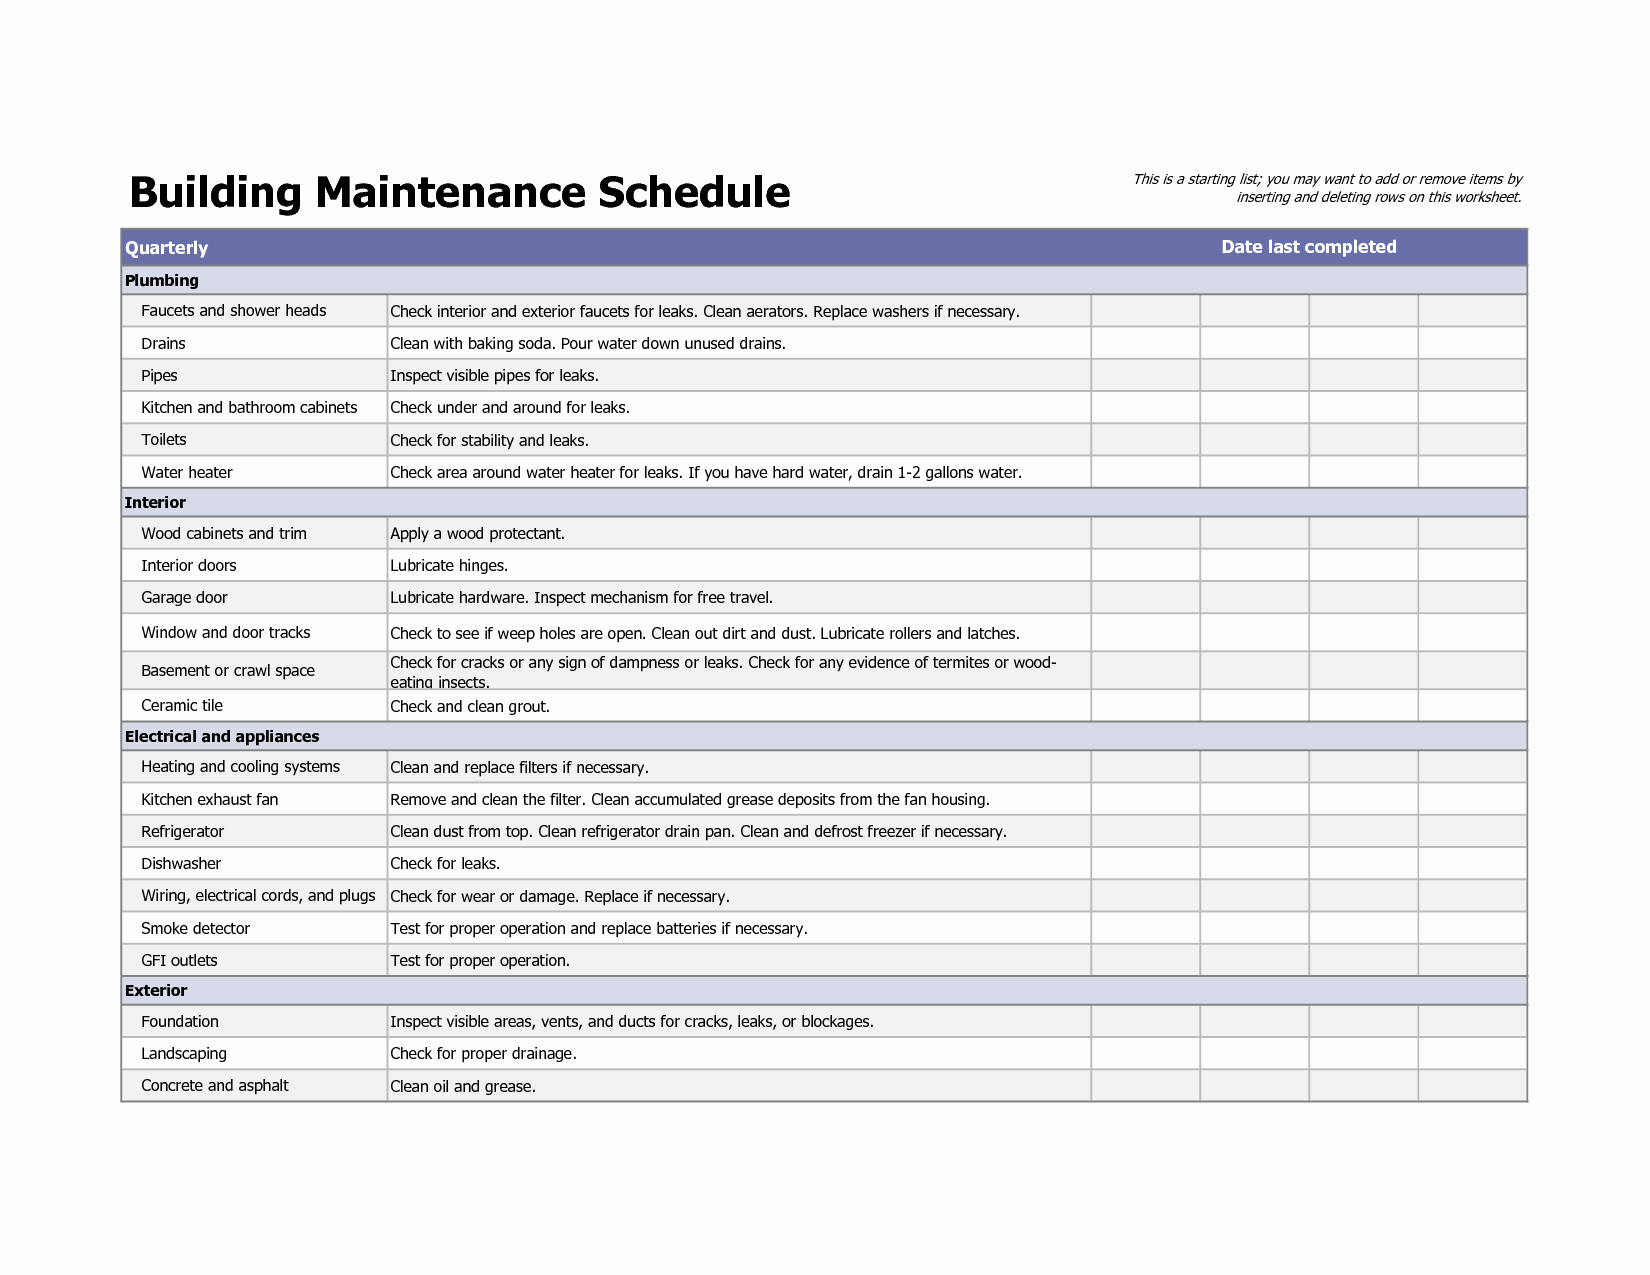 Preventative Maintenance Schedule Template Elegant Building Maintenance Schedule Excel Template